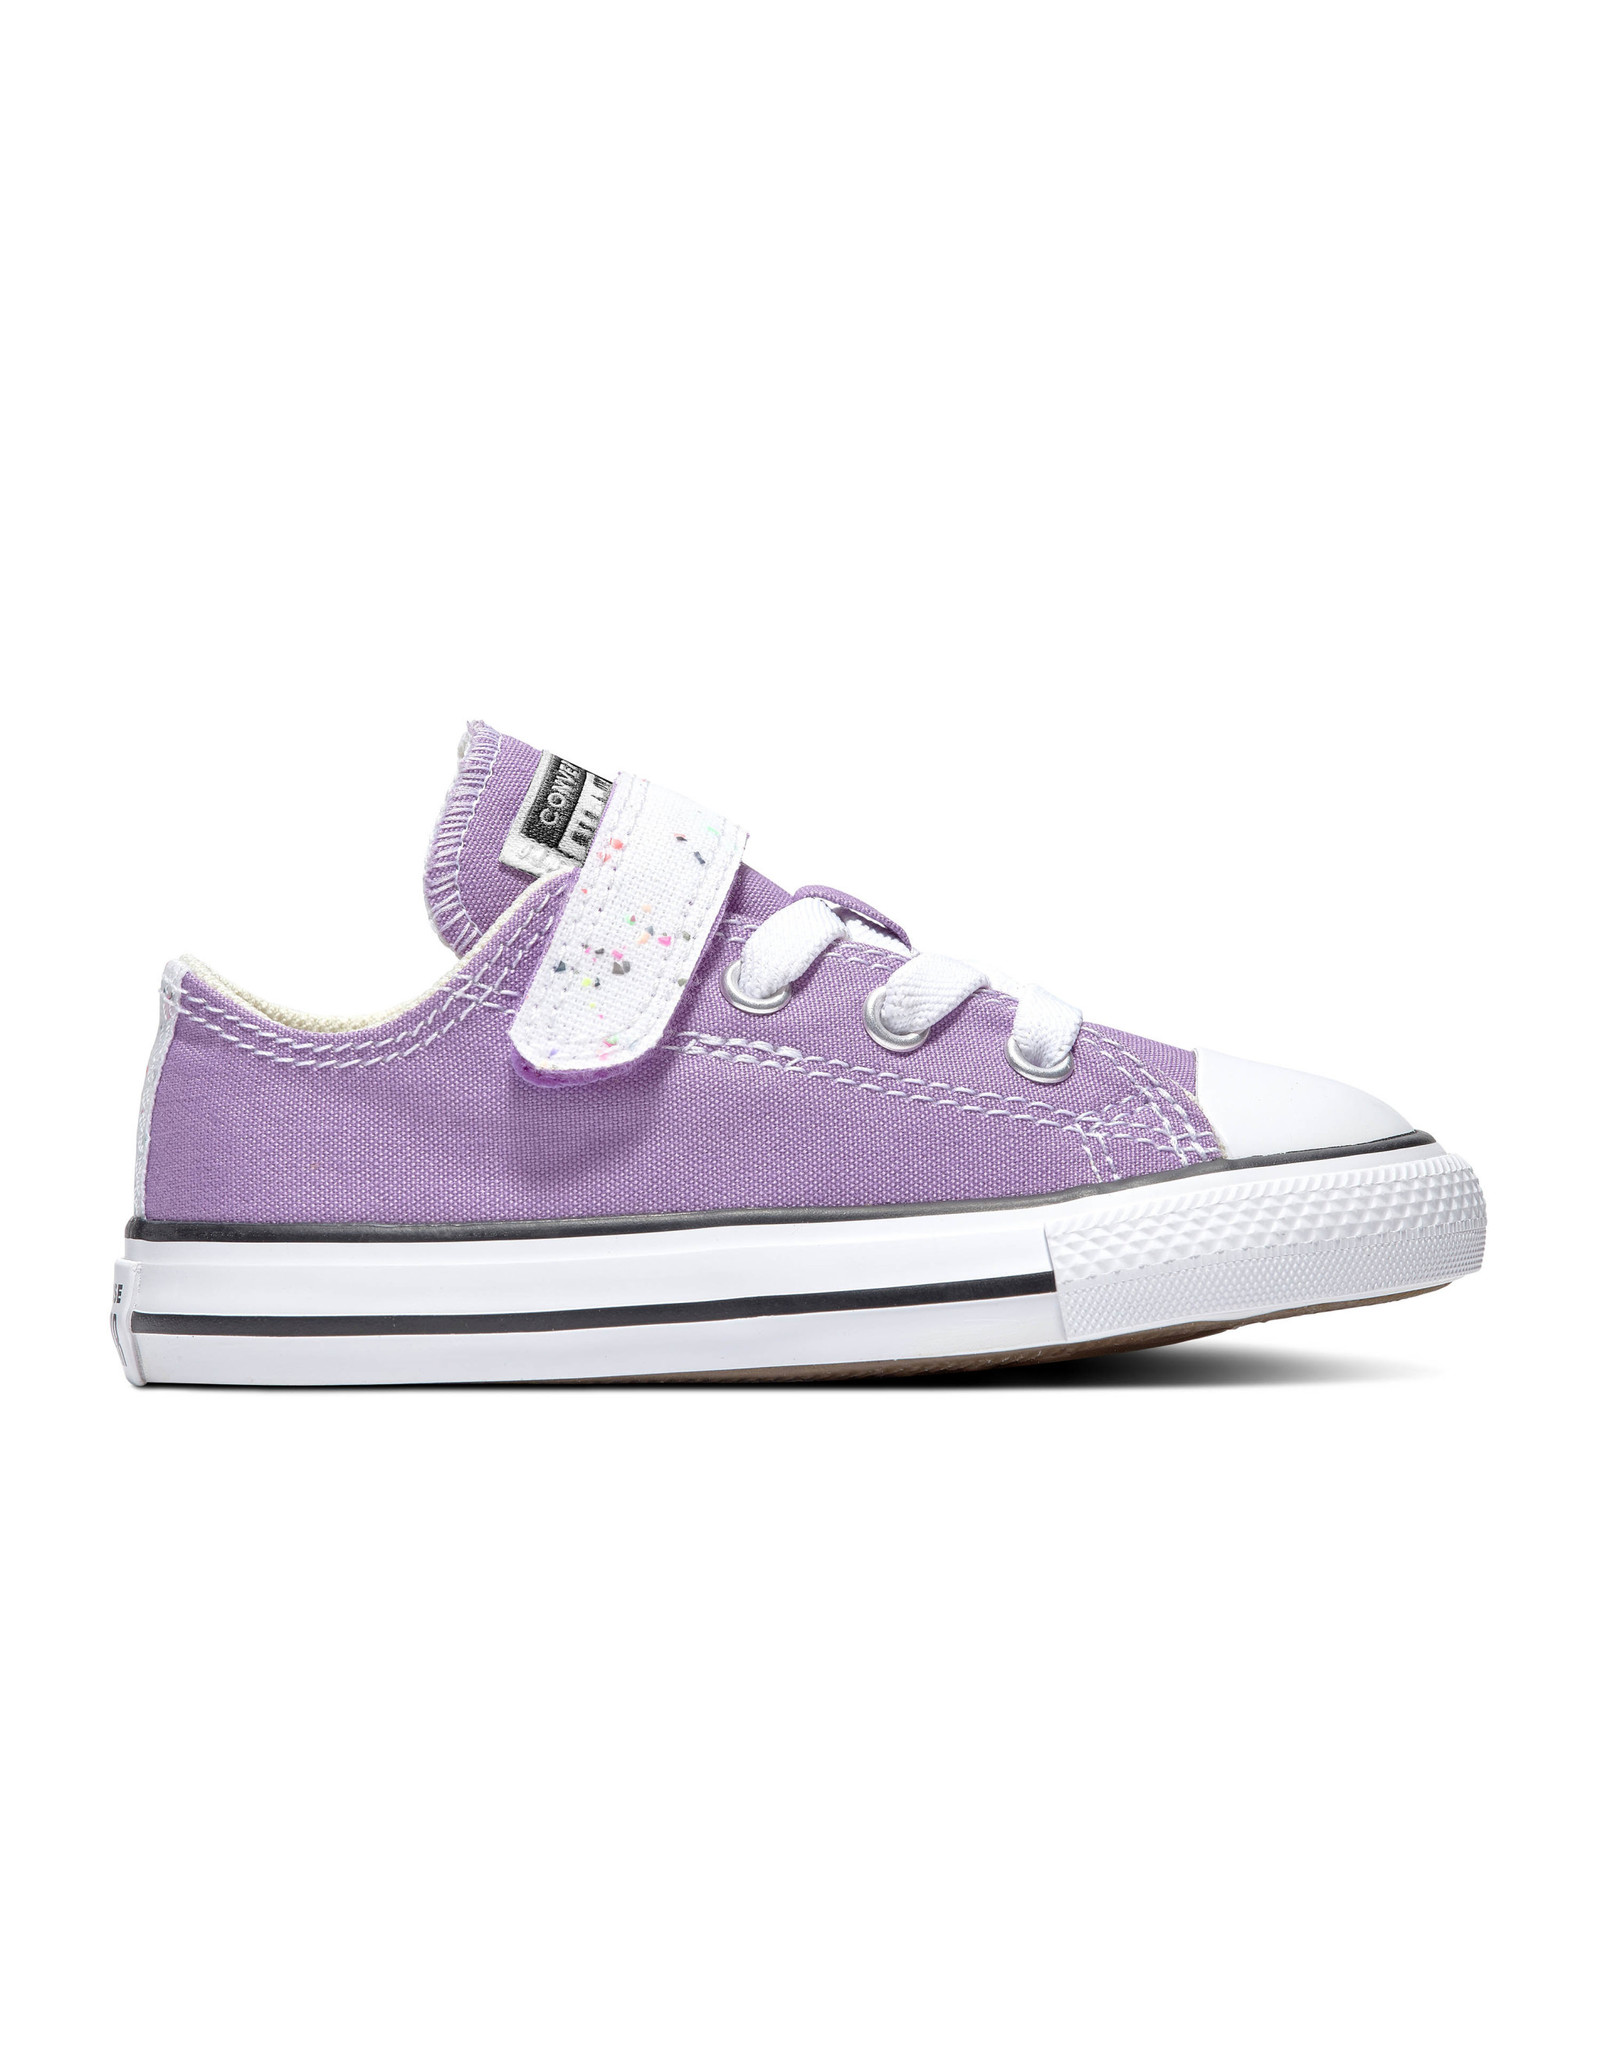 CONVERSE CHUCK TAYLOR ALL STAR 1V OX BRIGHT VIOLET/NATURAL IVORY CKVIO-765125C